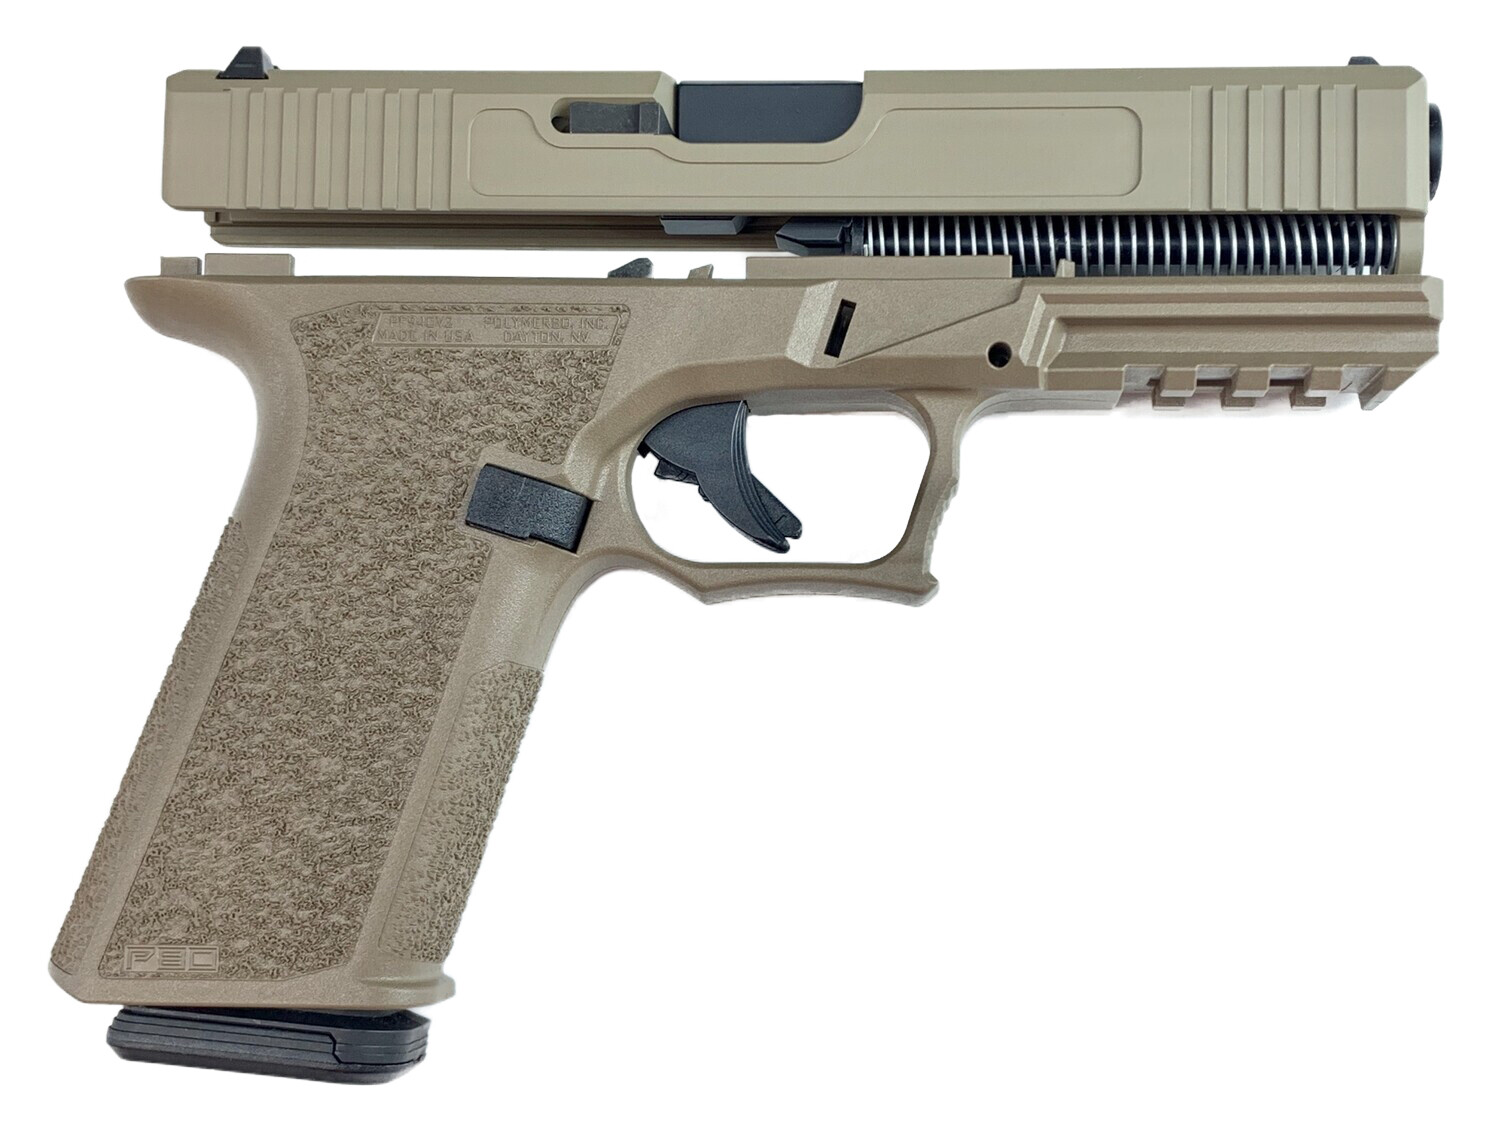 Patriot G17 80% Pistol Build Kit 9mm - FDE - FRAME NOT INCLUDED